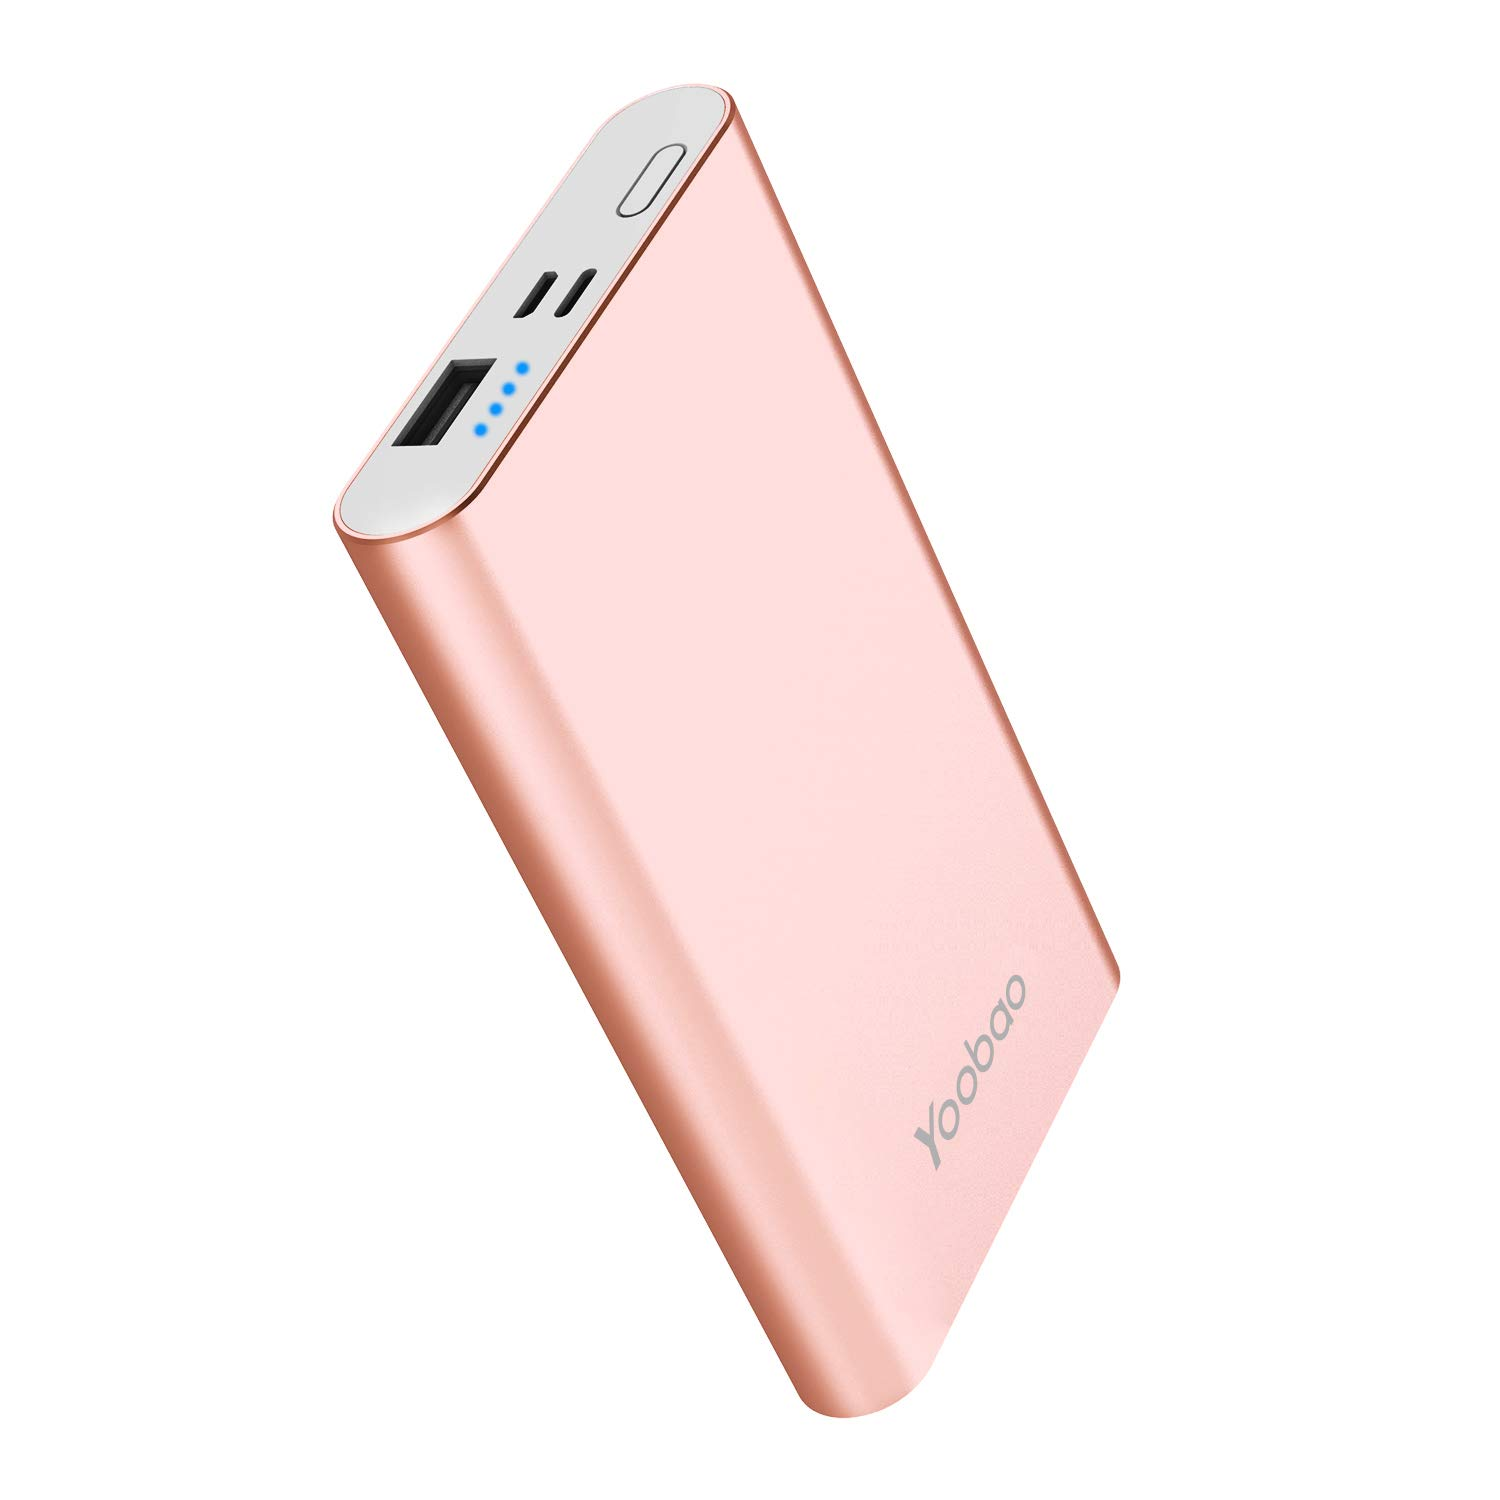 Yoobao Portable Charger Power Bank Apple & Micro Input 8000mAh Compact Powerbank External Cellphone Battery Backup Pack Compatible iPhone X 8 7 6 Plus ...